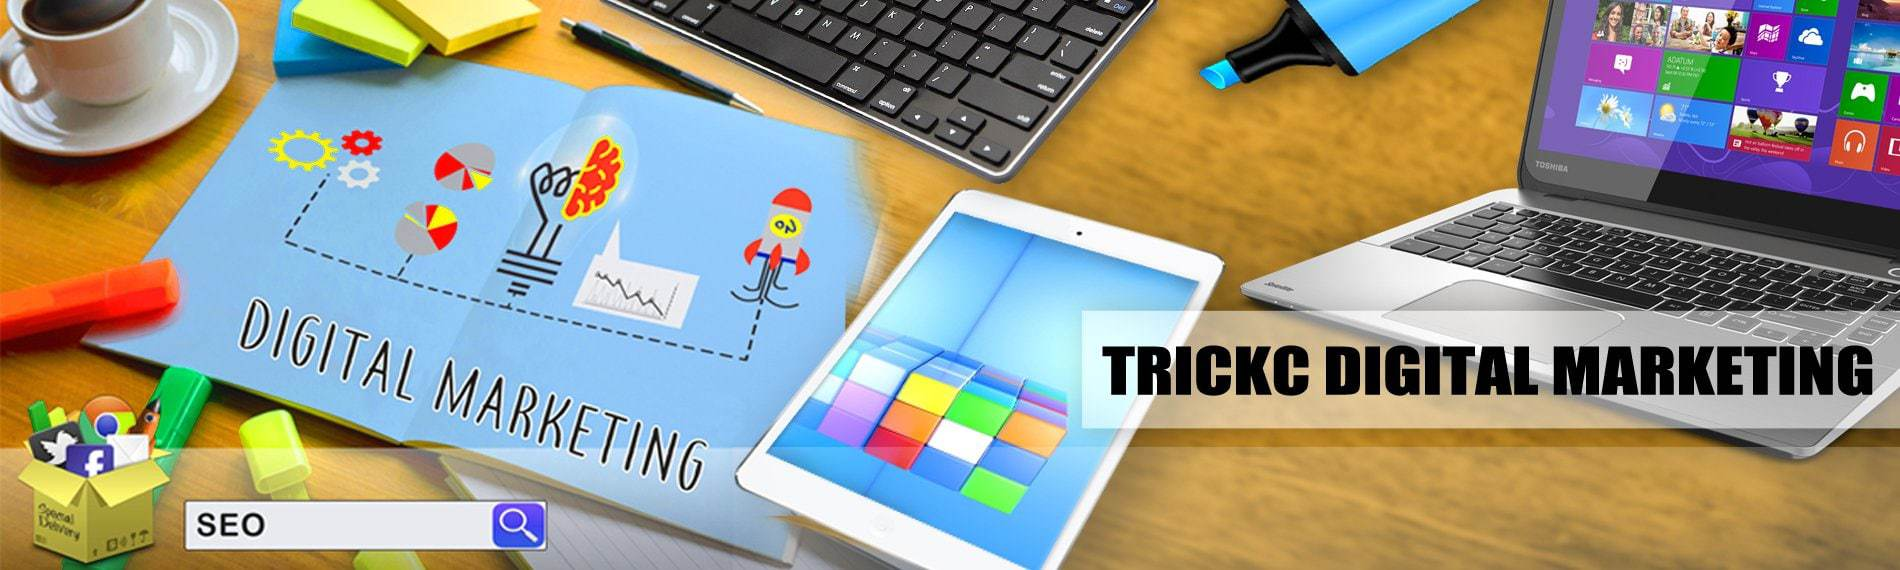 TRICKC Digital Marketing Services